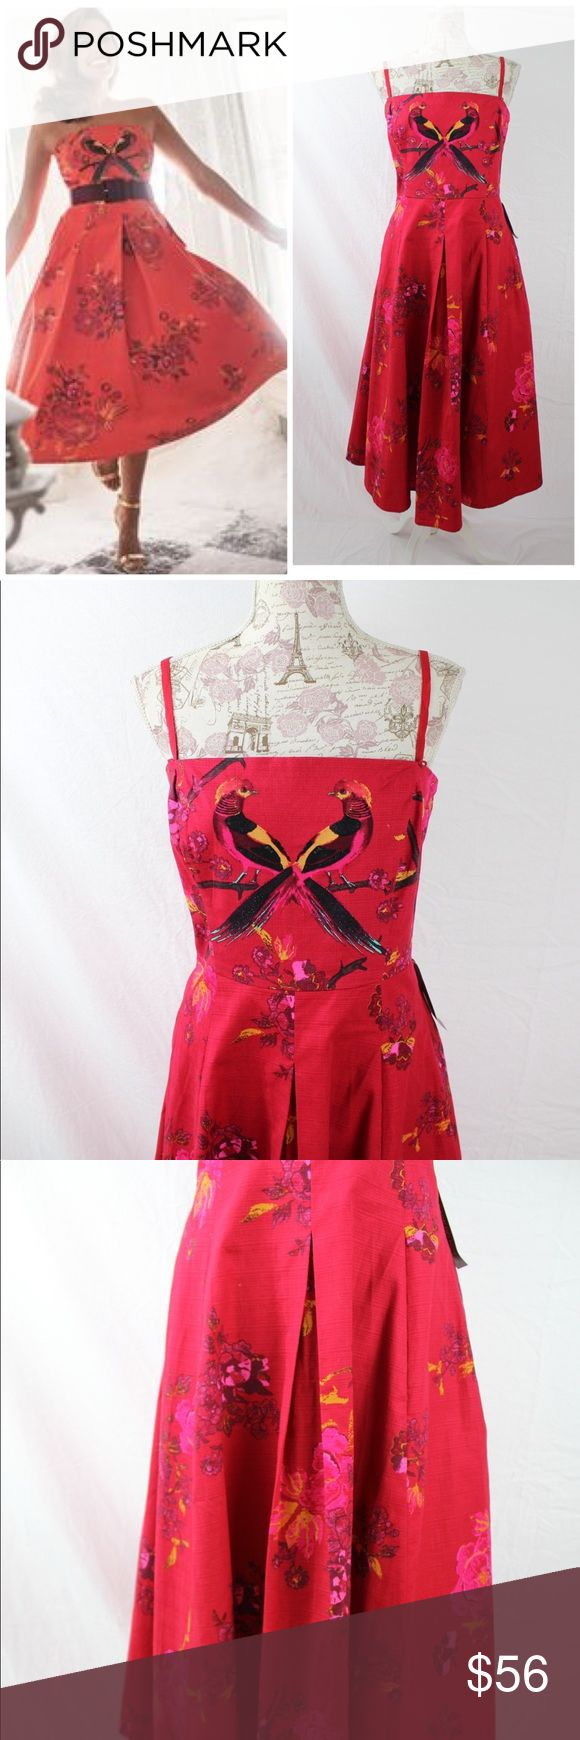 """Eva Mendes Red Pheasants """"Del Mar"""" Dress NEW Large Eva Mendes New York & Co. Del Mar dress in red pheasant, sz. Large. """"A beloved look is back! The latest iteration of Eva's most-loved Del Mar strapless dress features [a pheasant &] floral print; the pleated A-line skirt ensures a flattering fit. overview * Straight neckline with boning. * Detachable Straps/ or Strapless. * Fitted bodice with pleated A-line skirt. * On-seam pockets. * Invisible center back zipper. * Pleated silhouette…"""